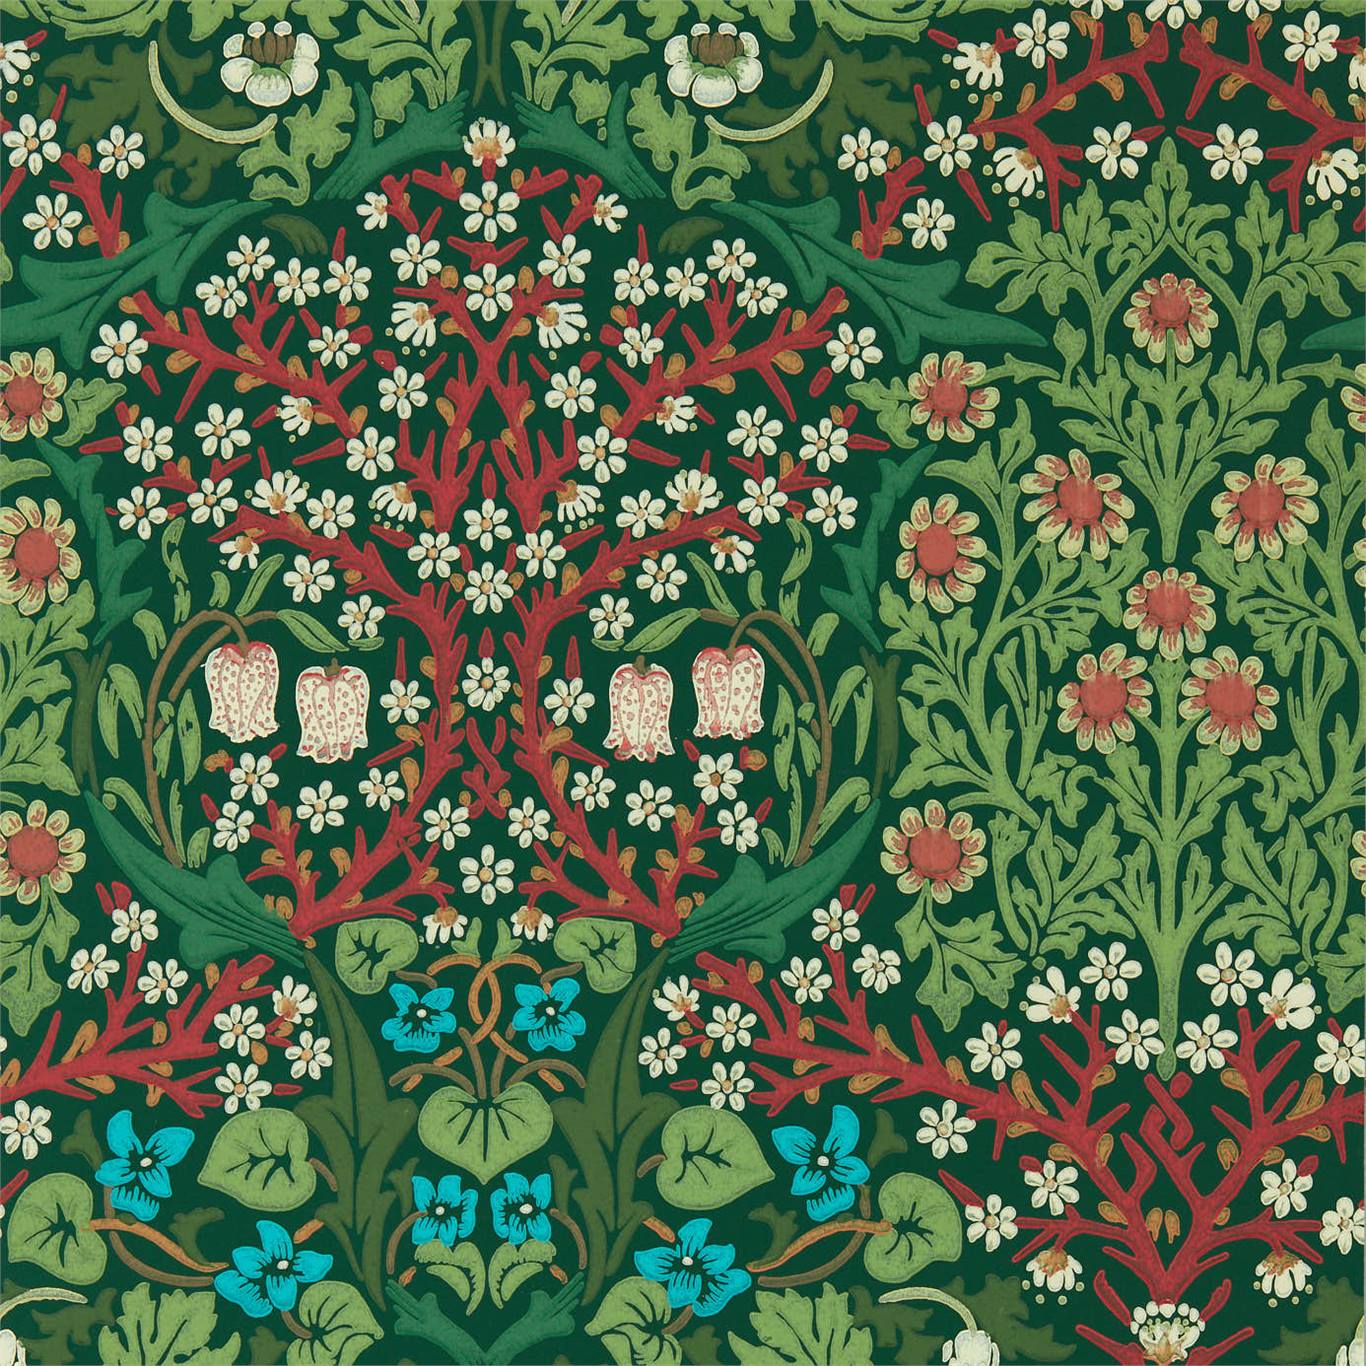 Behang Blackthorn uit de QUEEN SQUARE WALLPAPERS-collectie van Morris & Co.